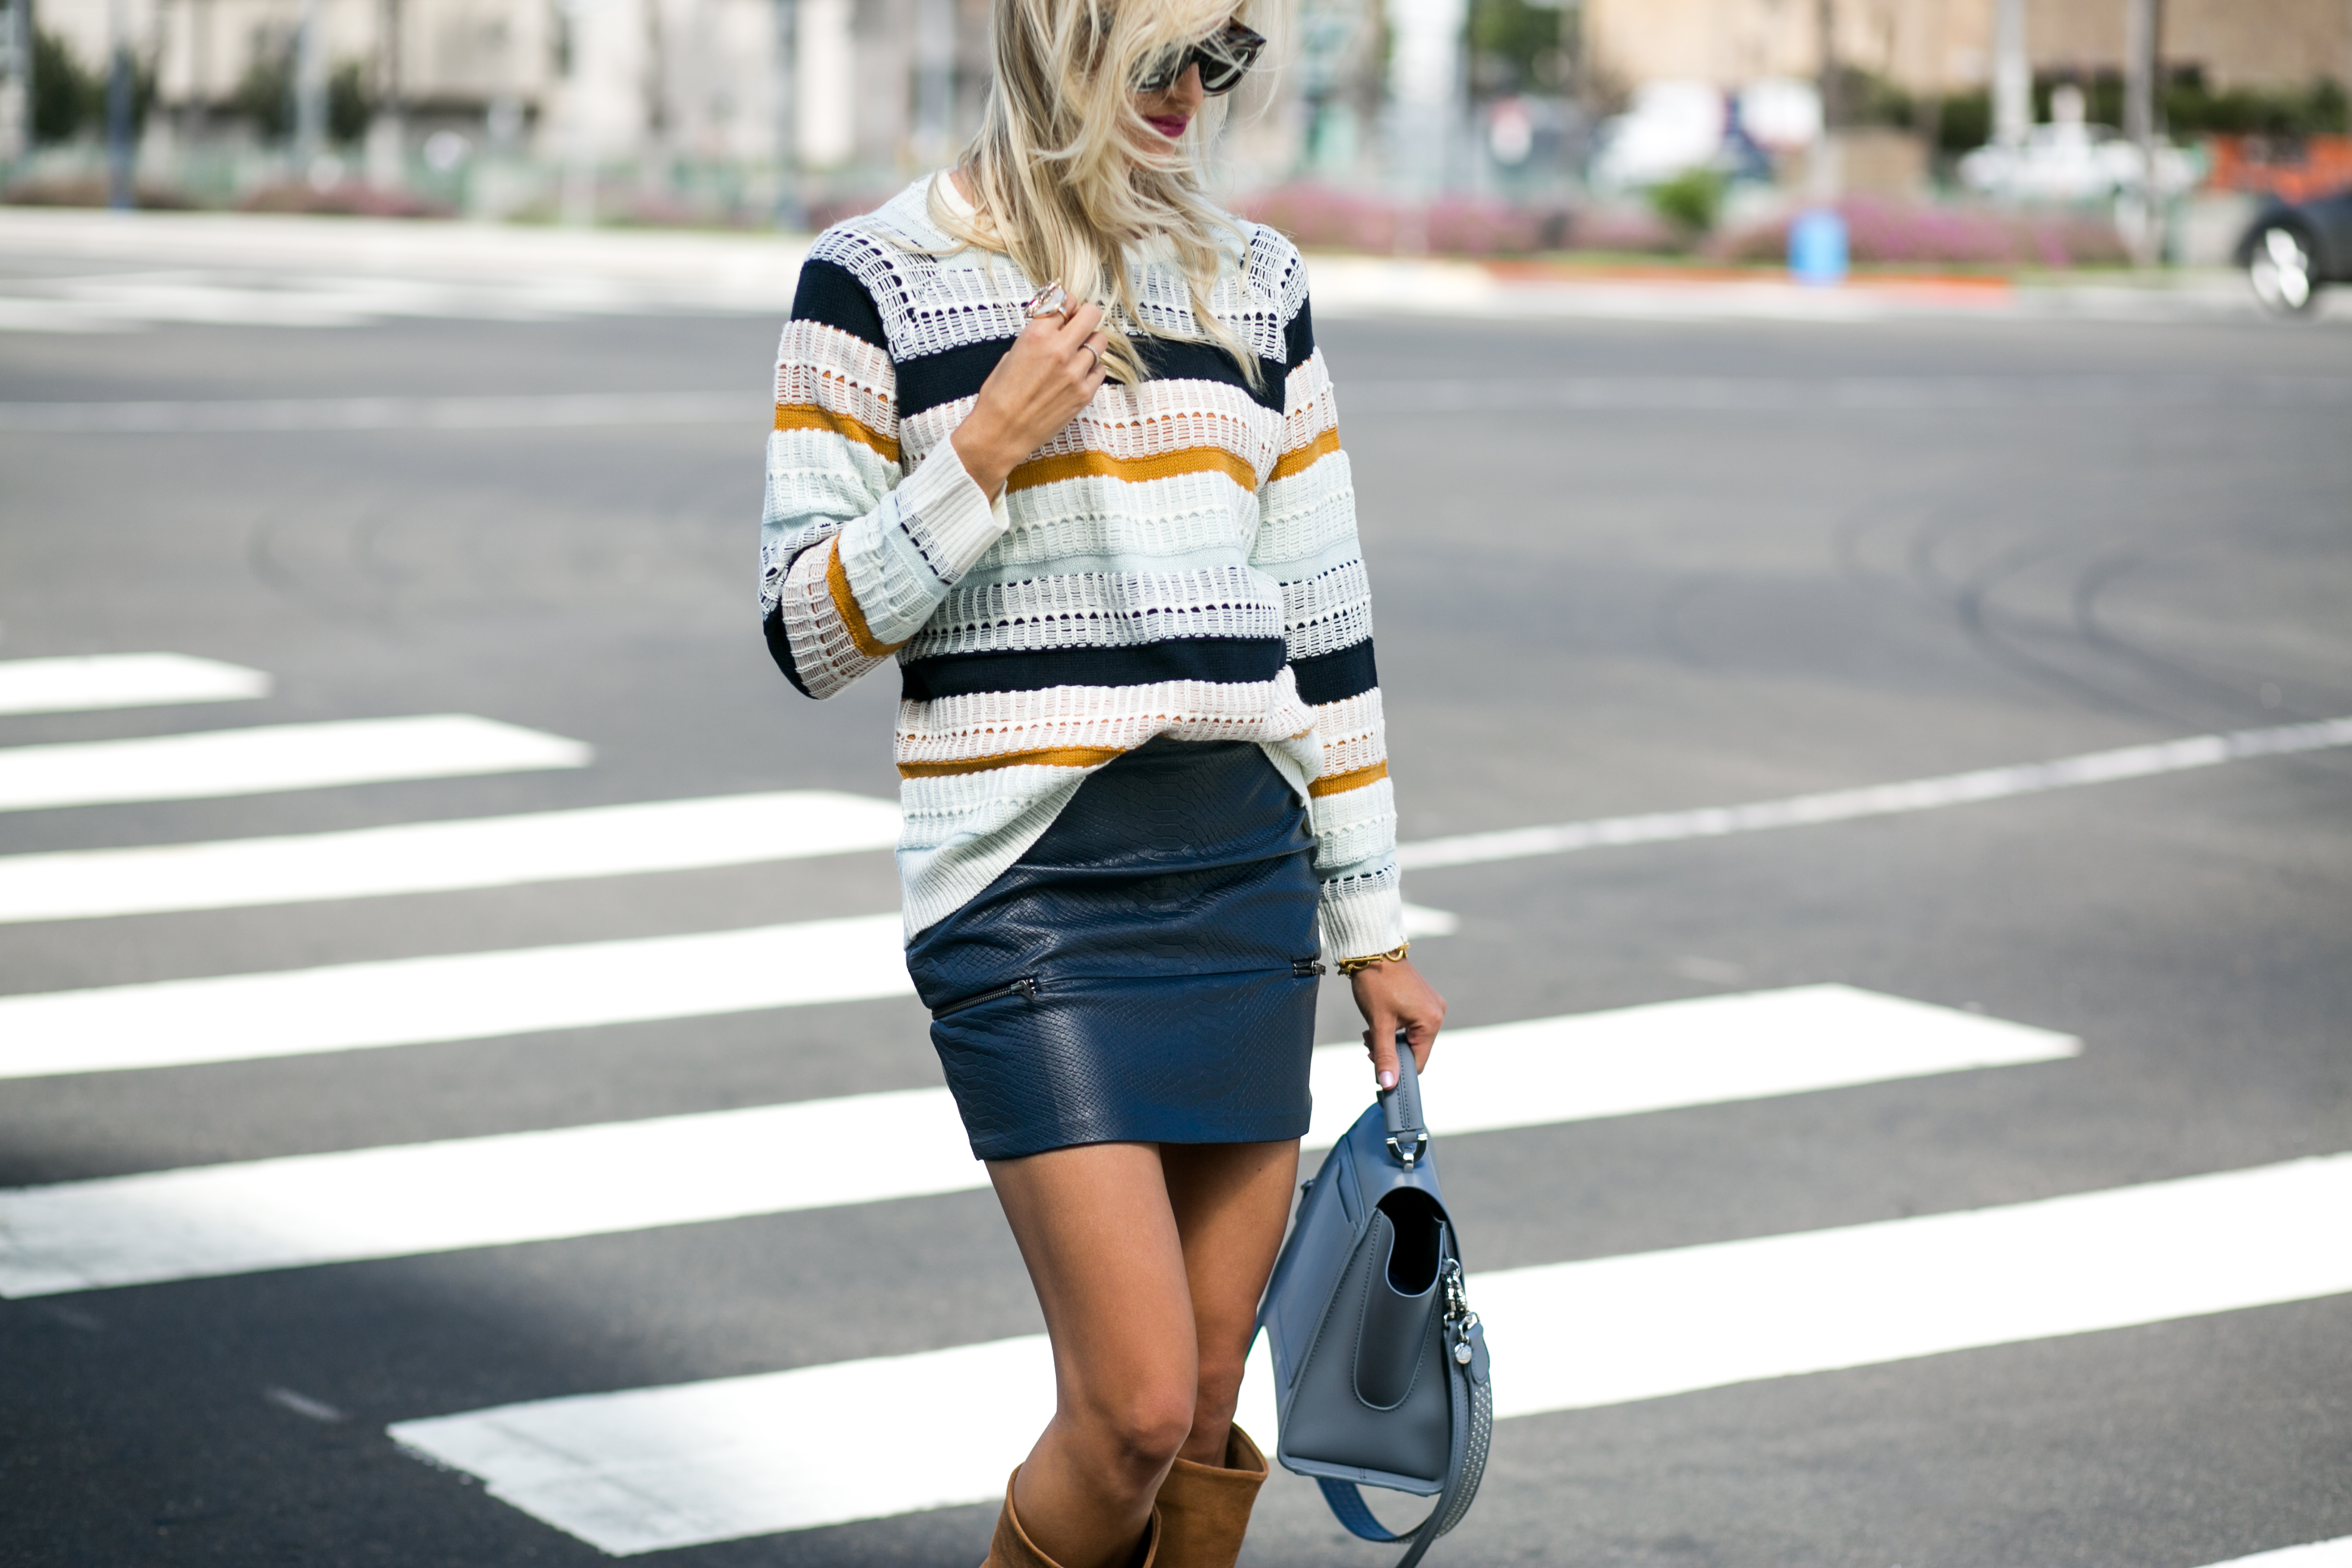 Leather Skirt + Tall Boots